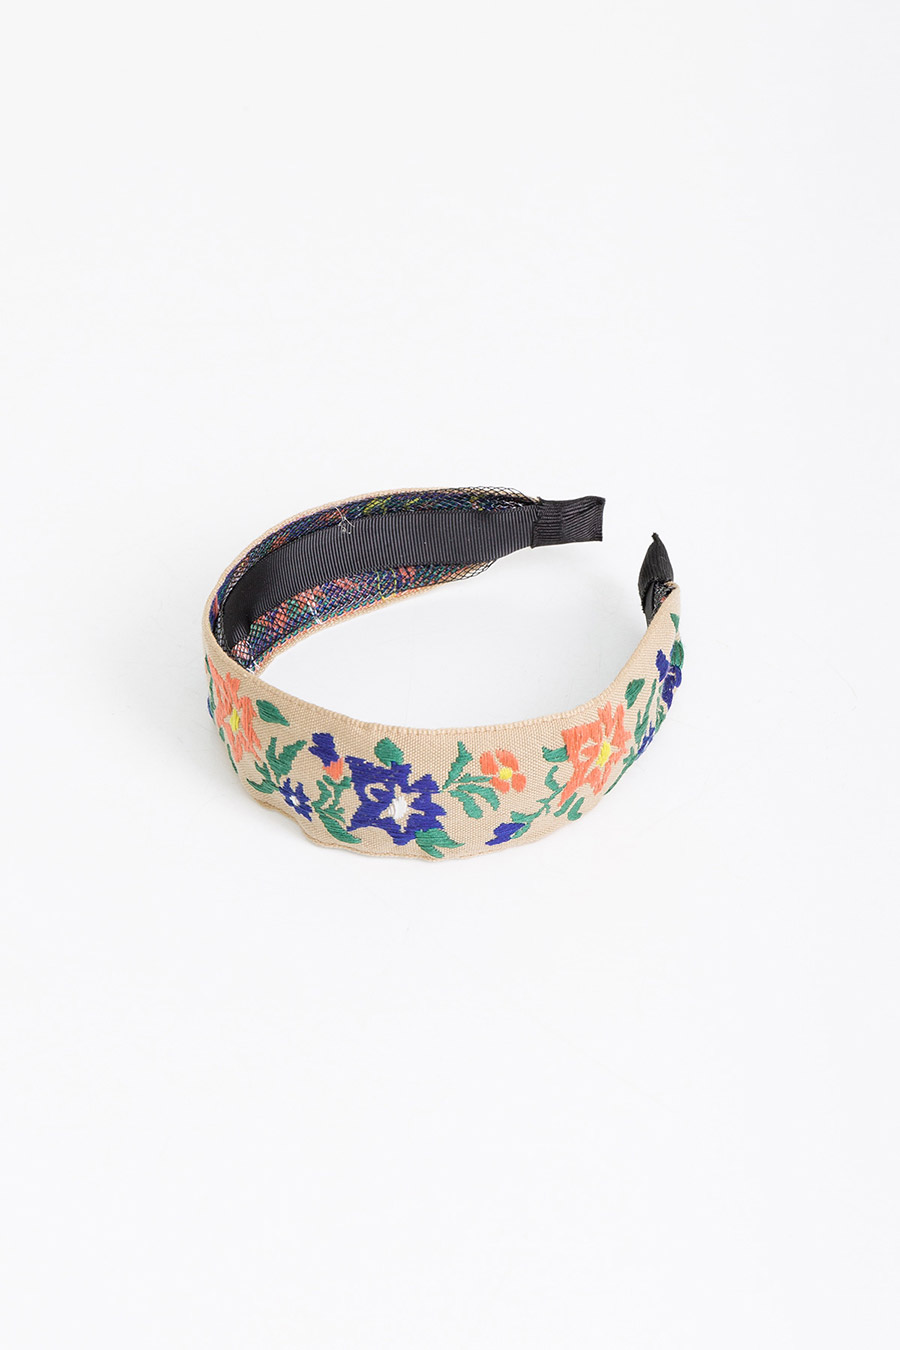 *BO* IBBIE HAIRBAND - BOHO